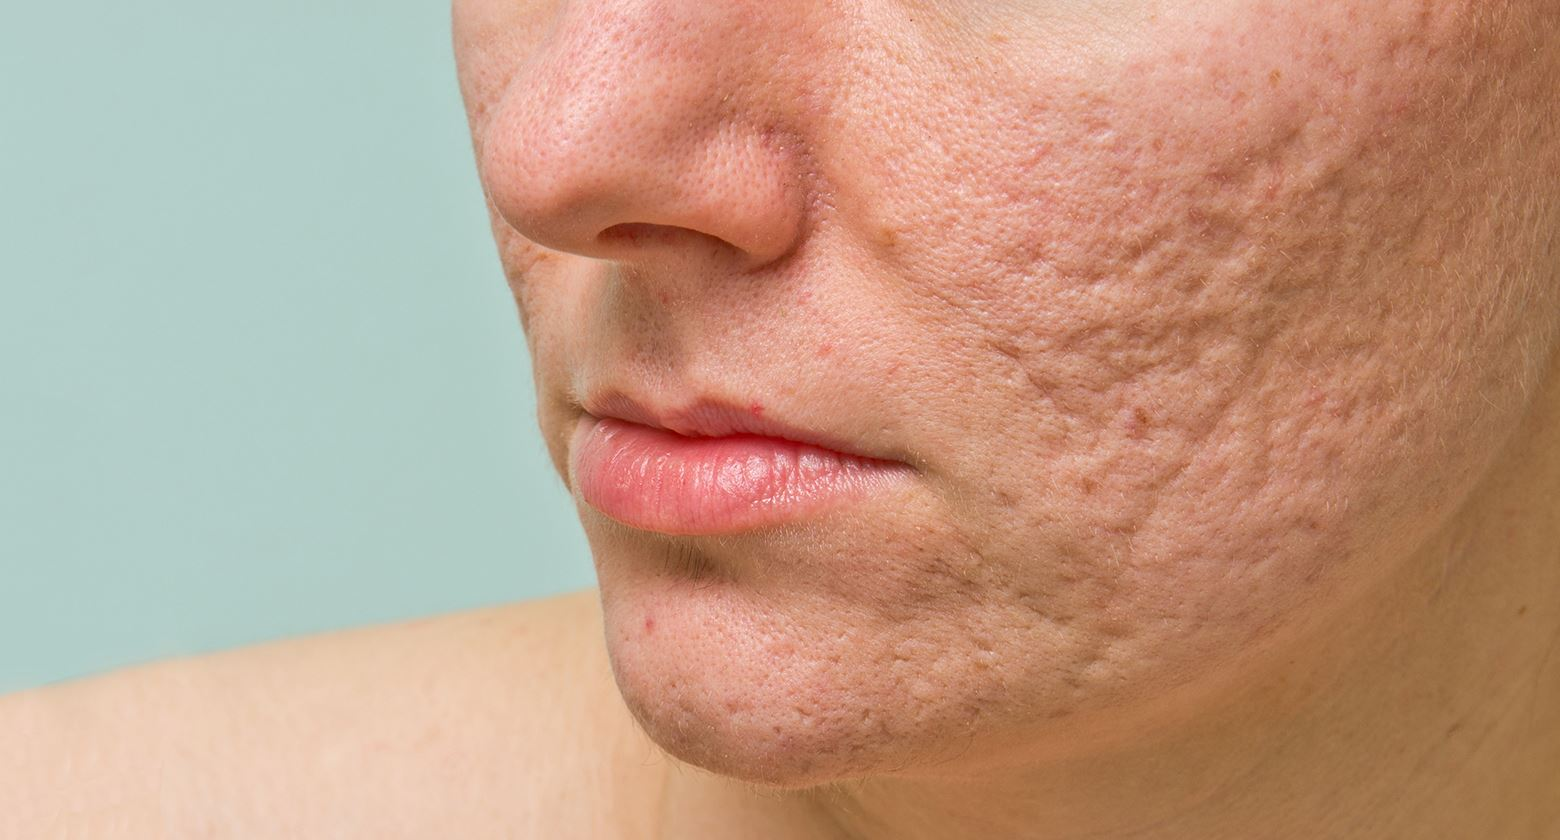 Acne Scar - Management Update